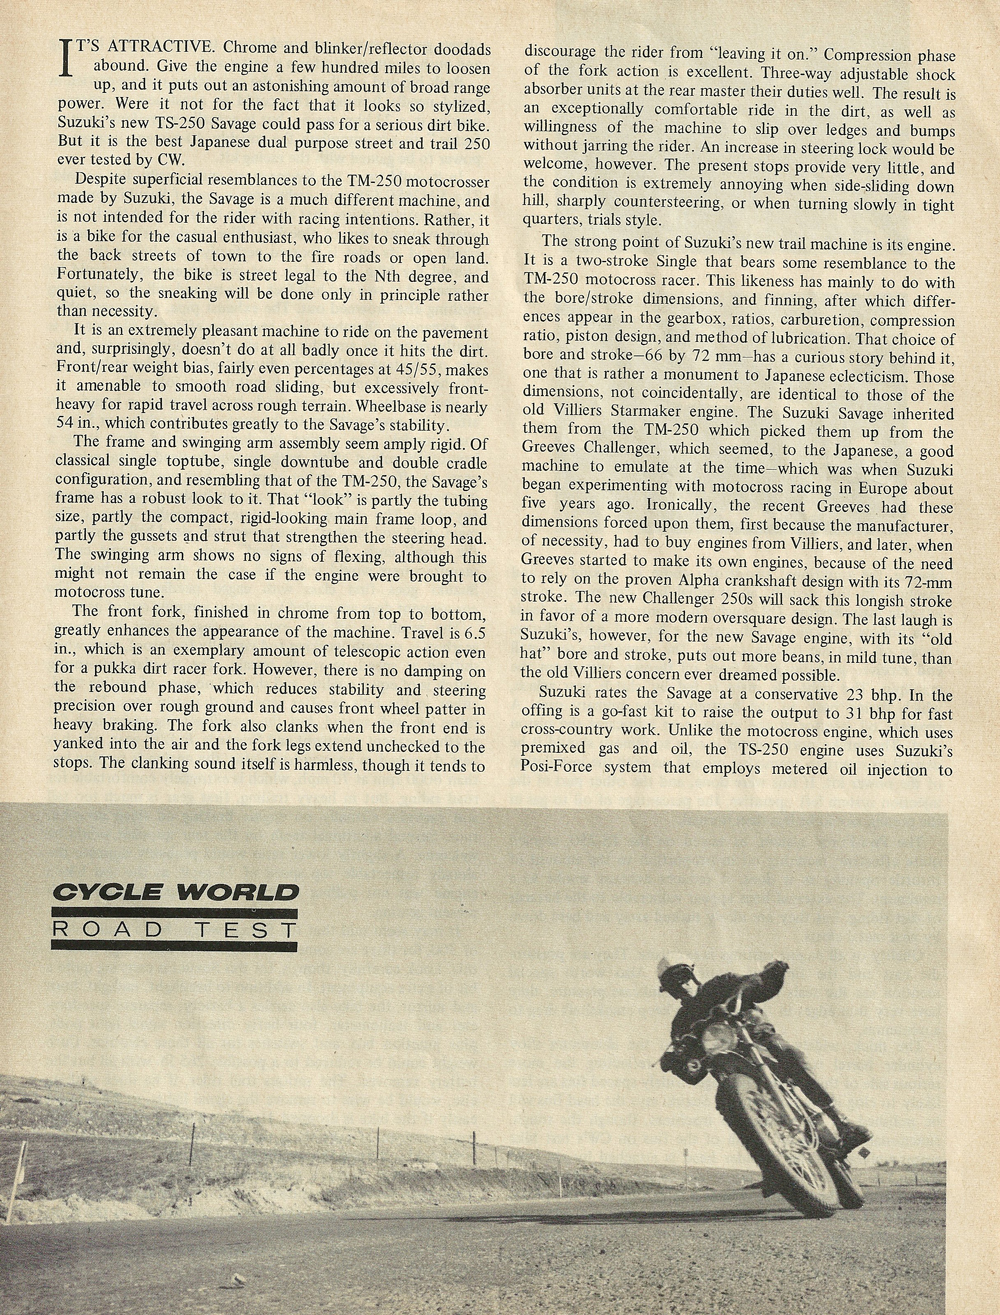 1969 Suzuki TS-250 Savage road test 2.jpg